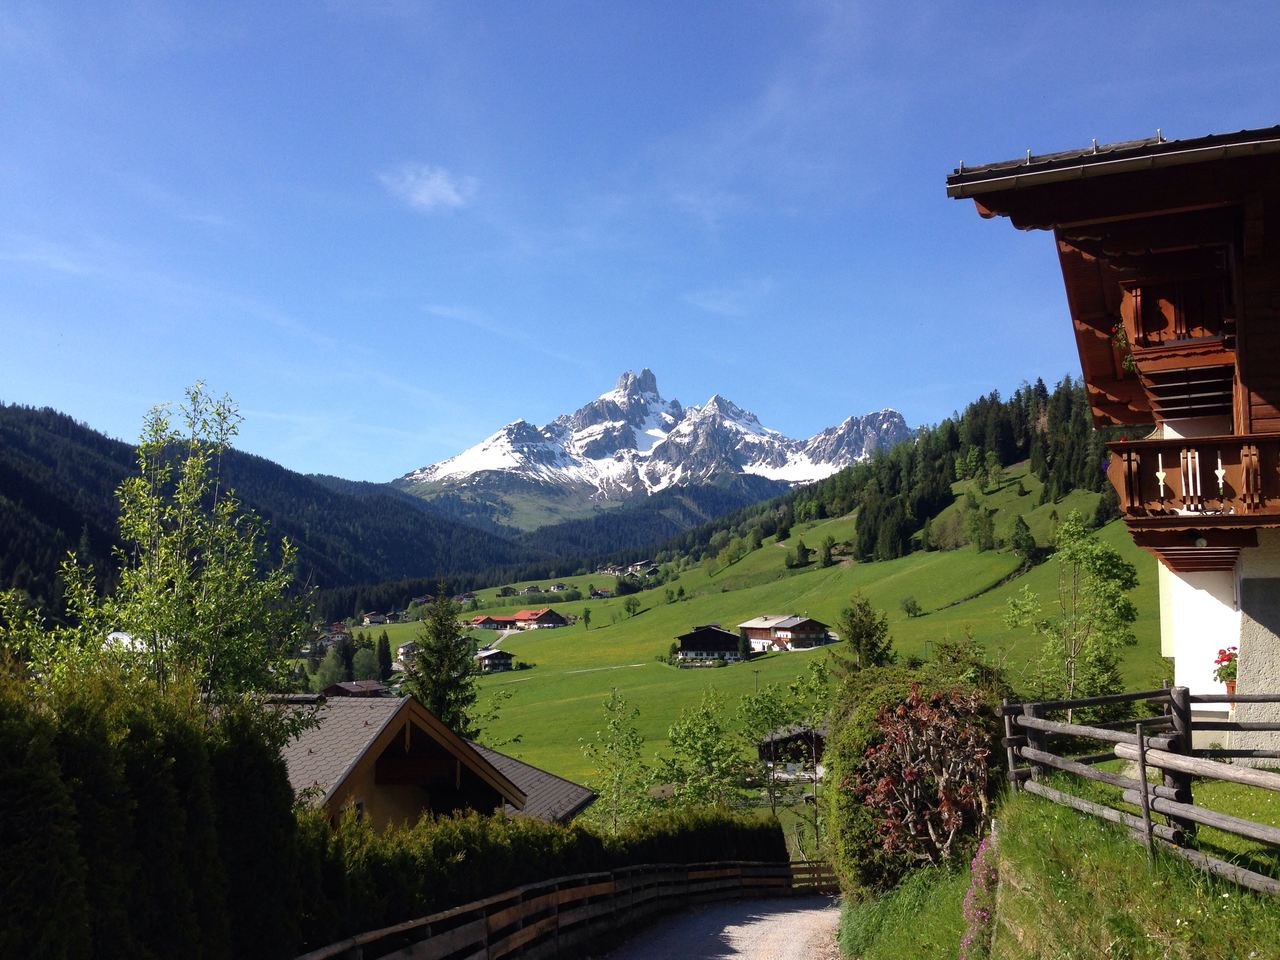 Filzmoos from the Hotel Alpenkrone. Best view to wake up to